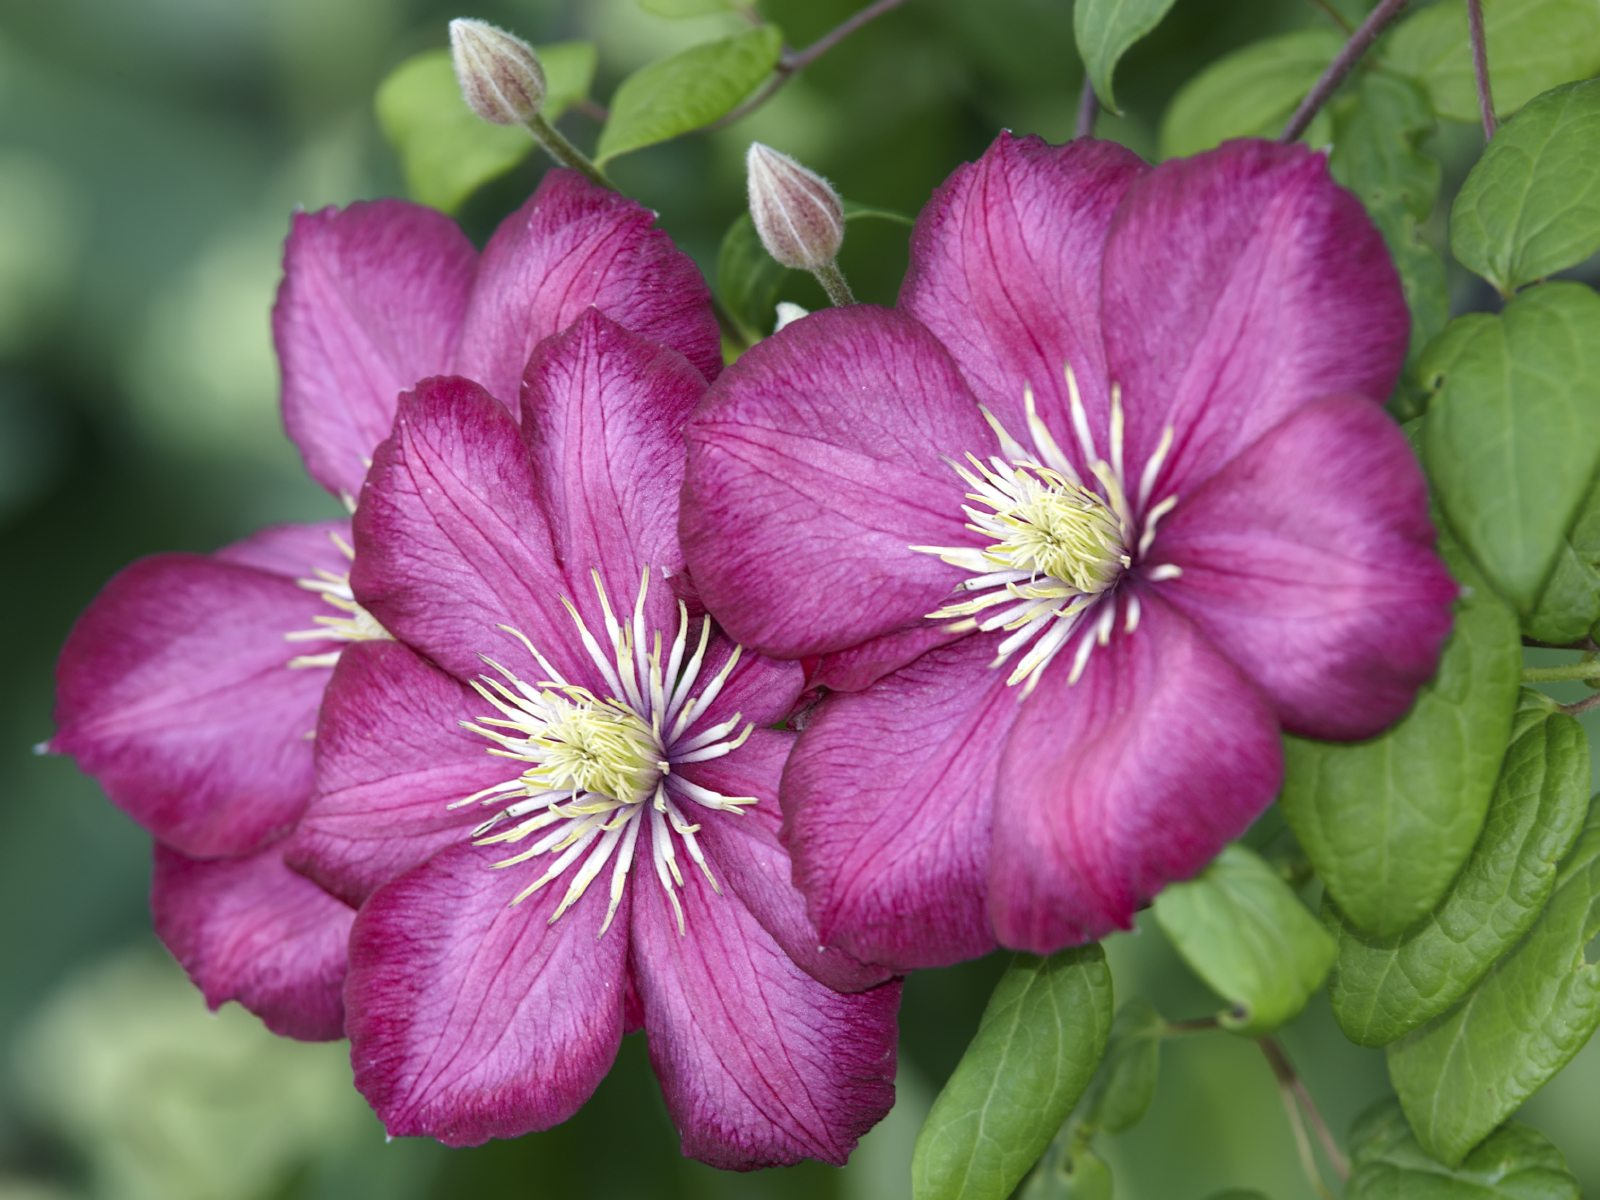 Clematis Plants For Fall - Tips On Growing Late Blooming ...